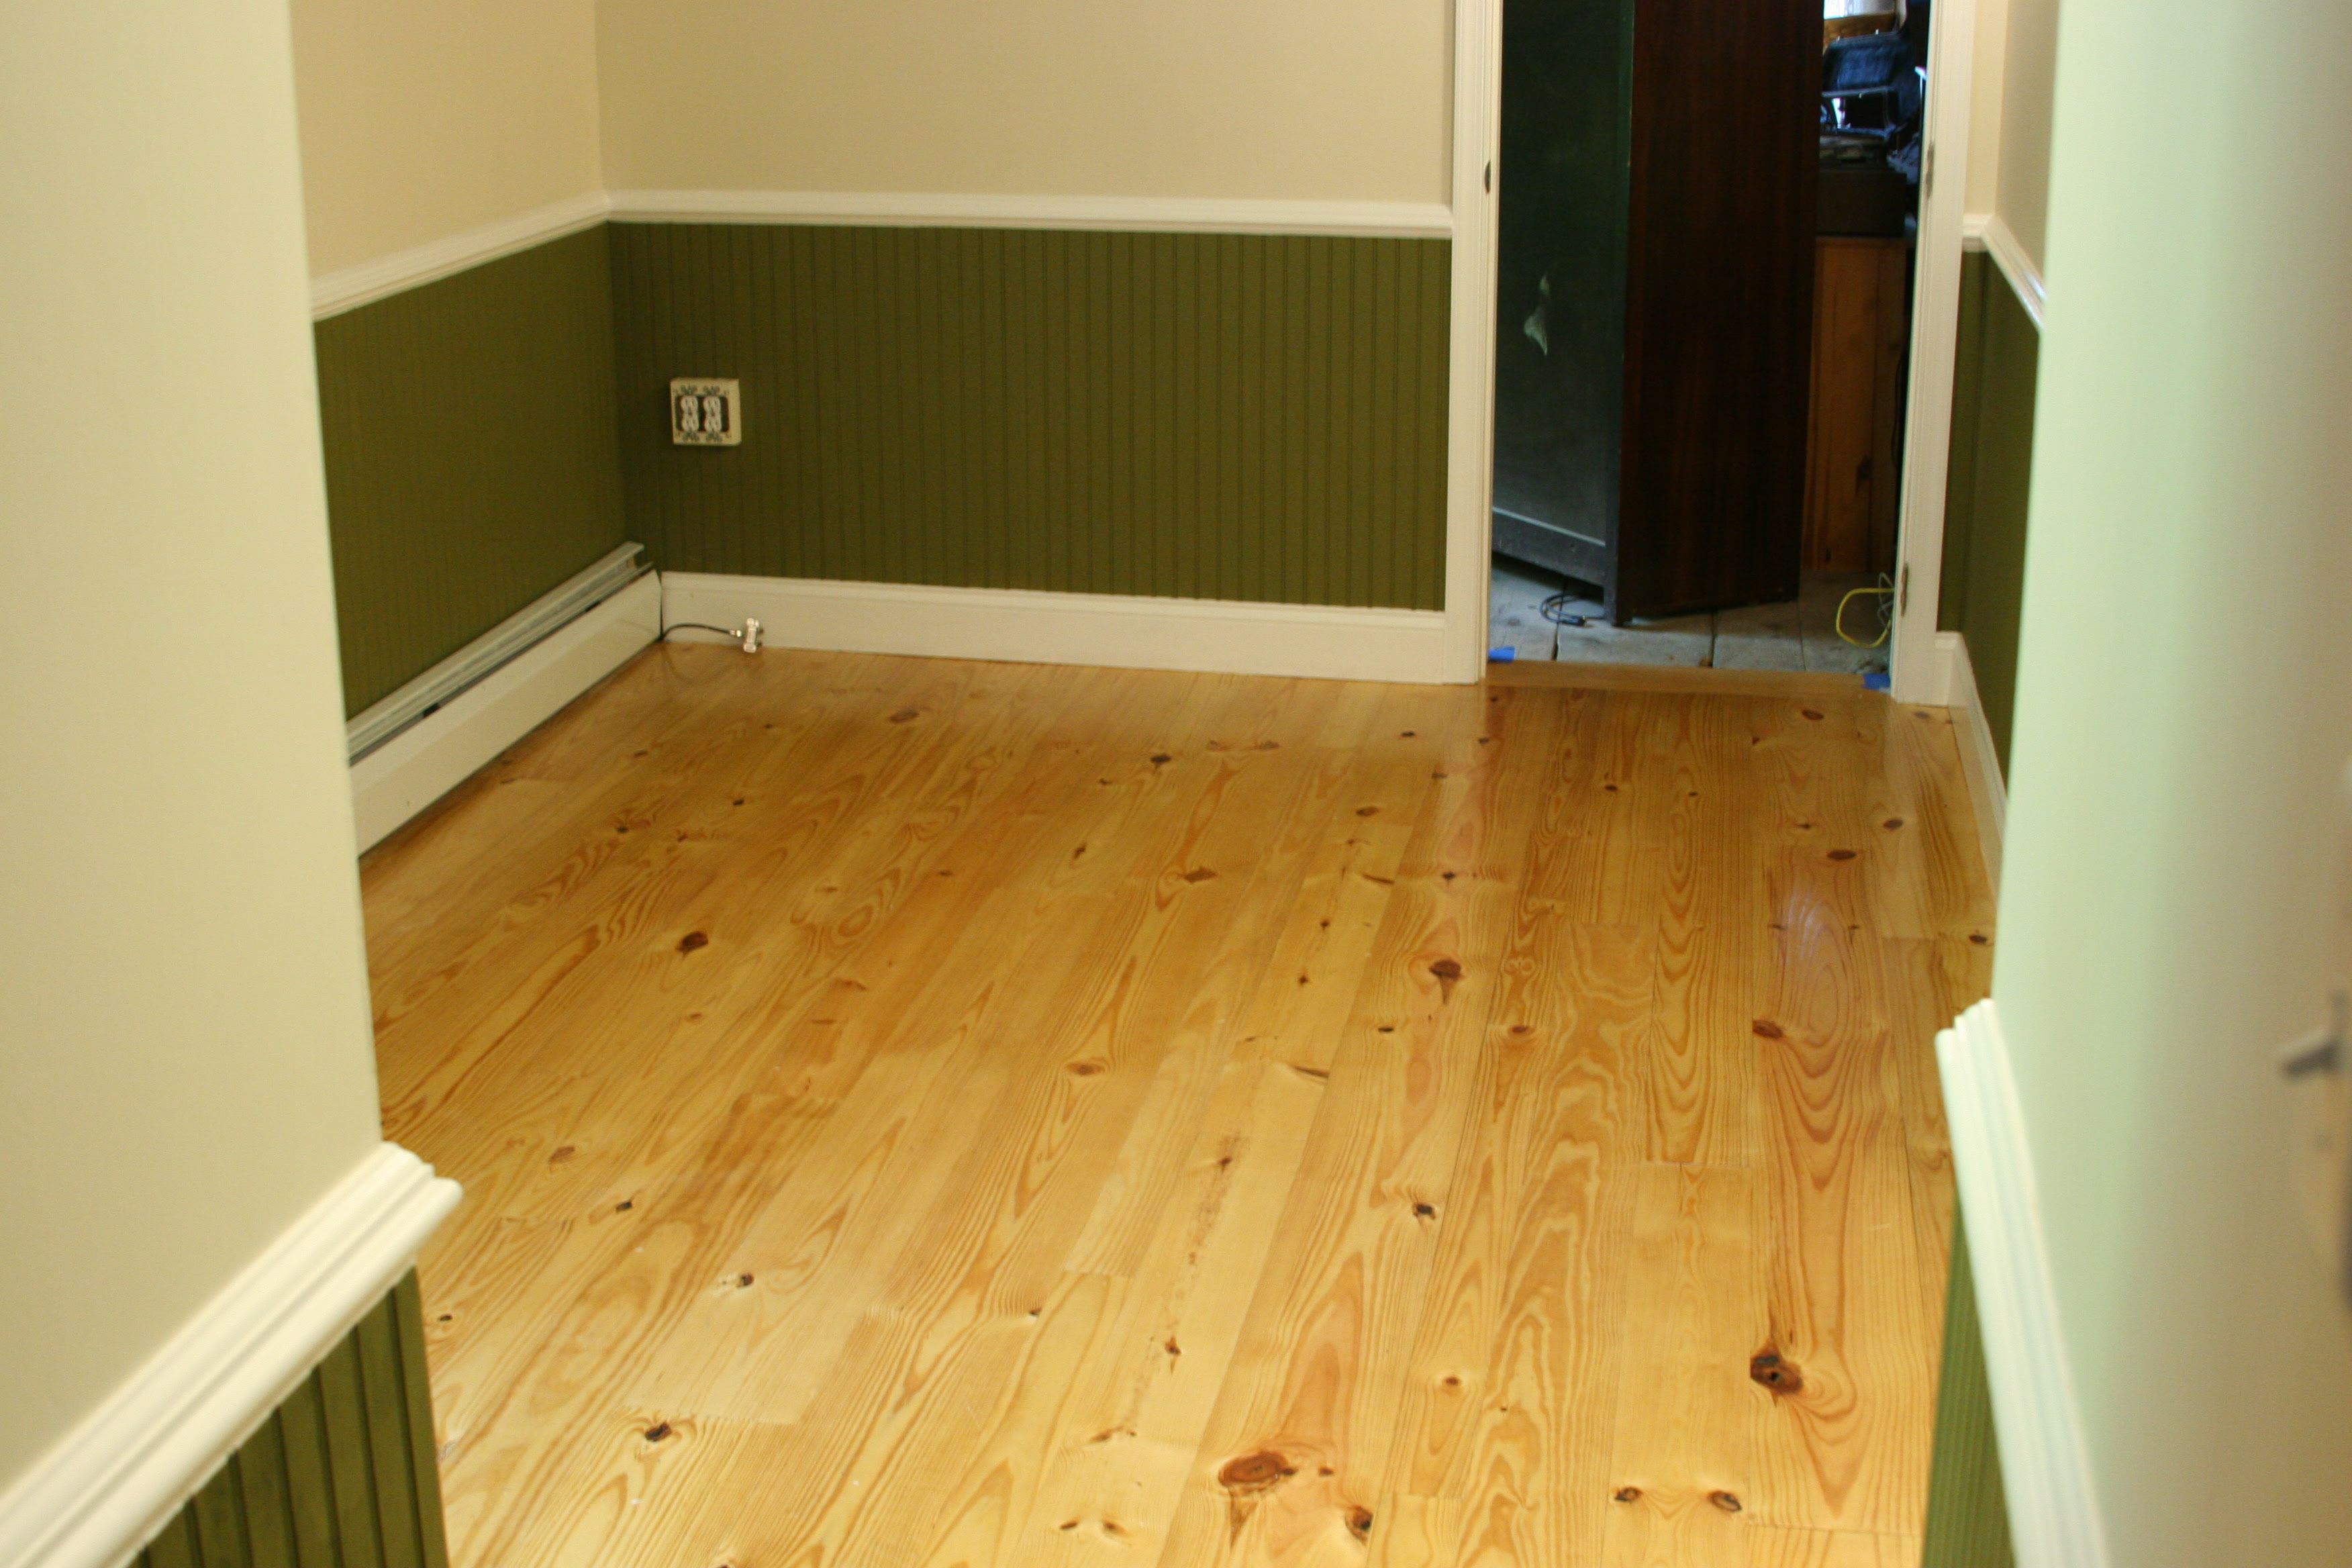 Wood Flooring with Knotty Pine Walls